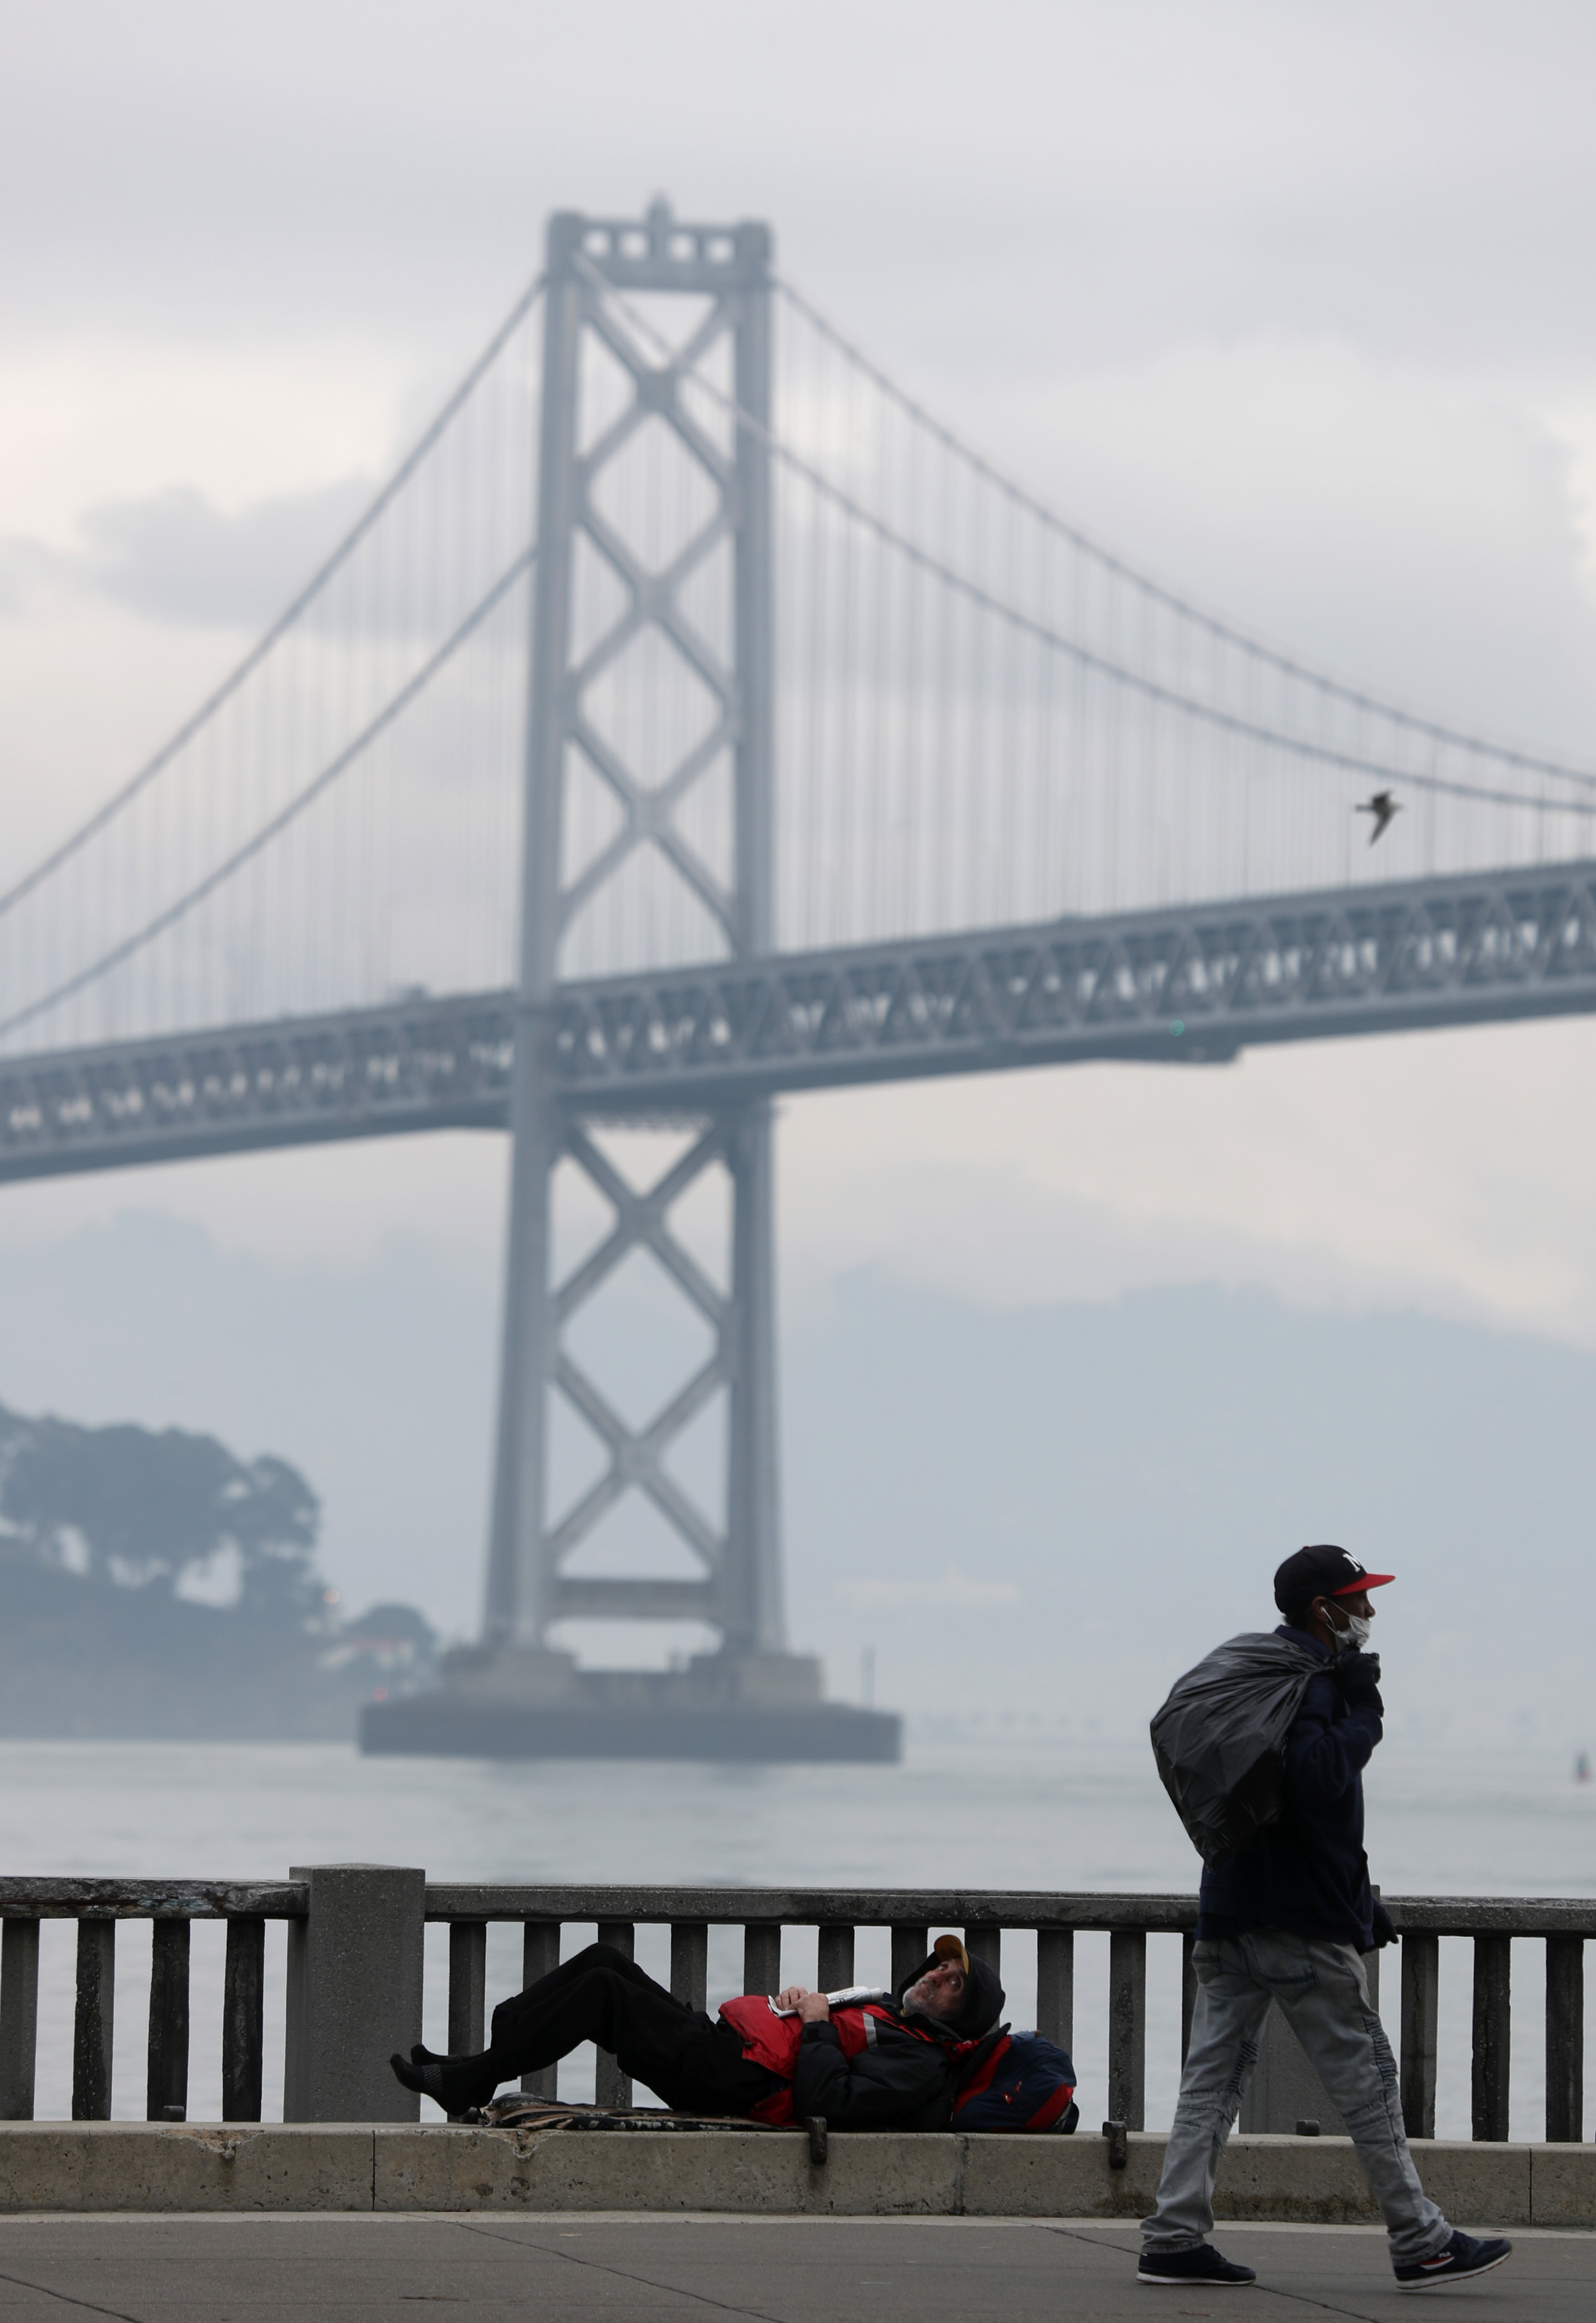 A homeless man lays on the sidewalk near the San Francisco–Oakland Bay Bridge on December 05, 2019 in San Francisco, California. (Photo by Justin Sullivan/Getty Images)